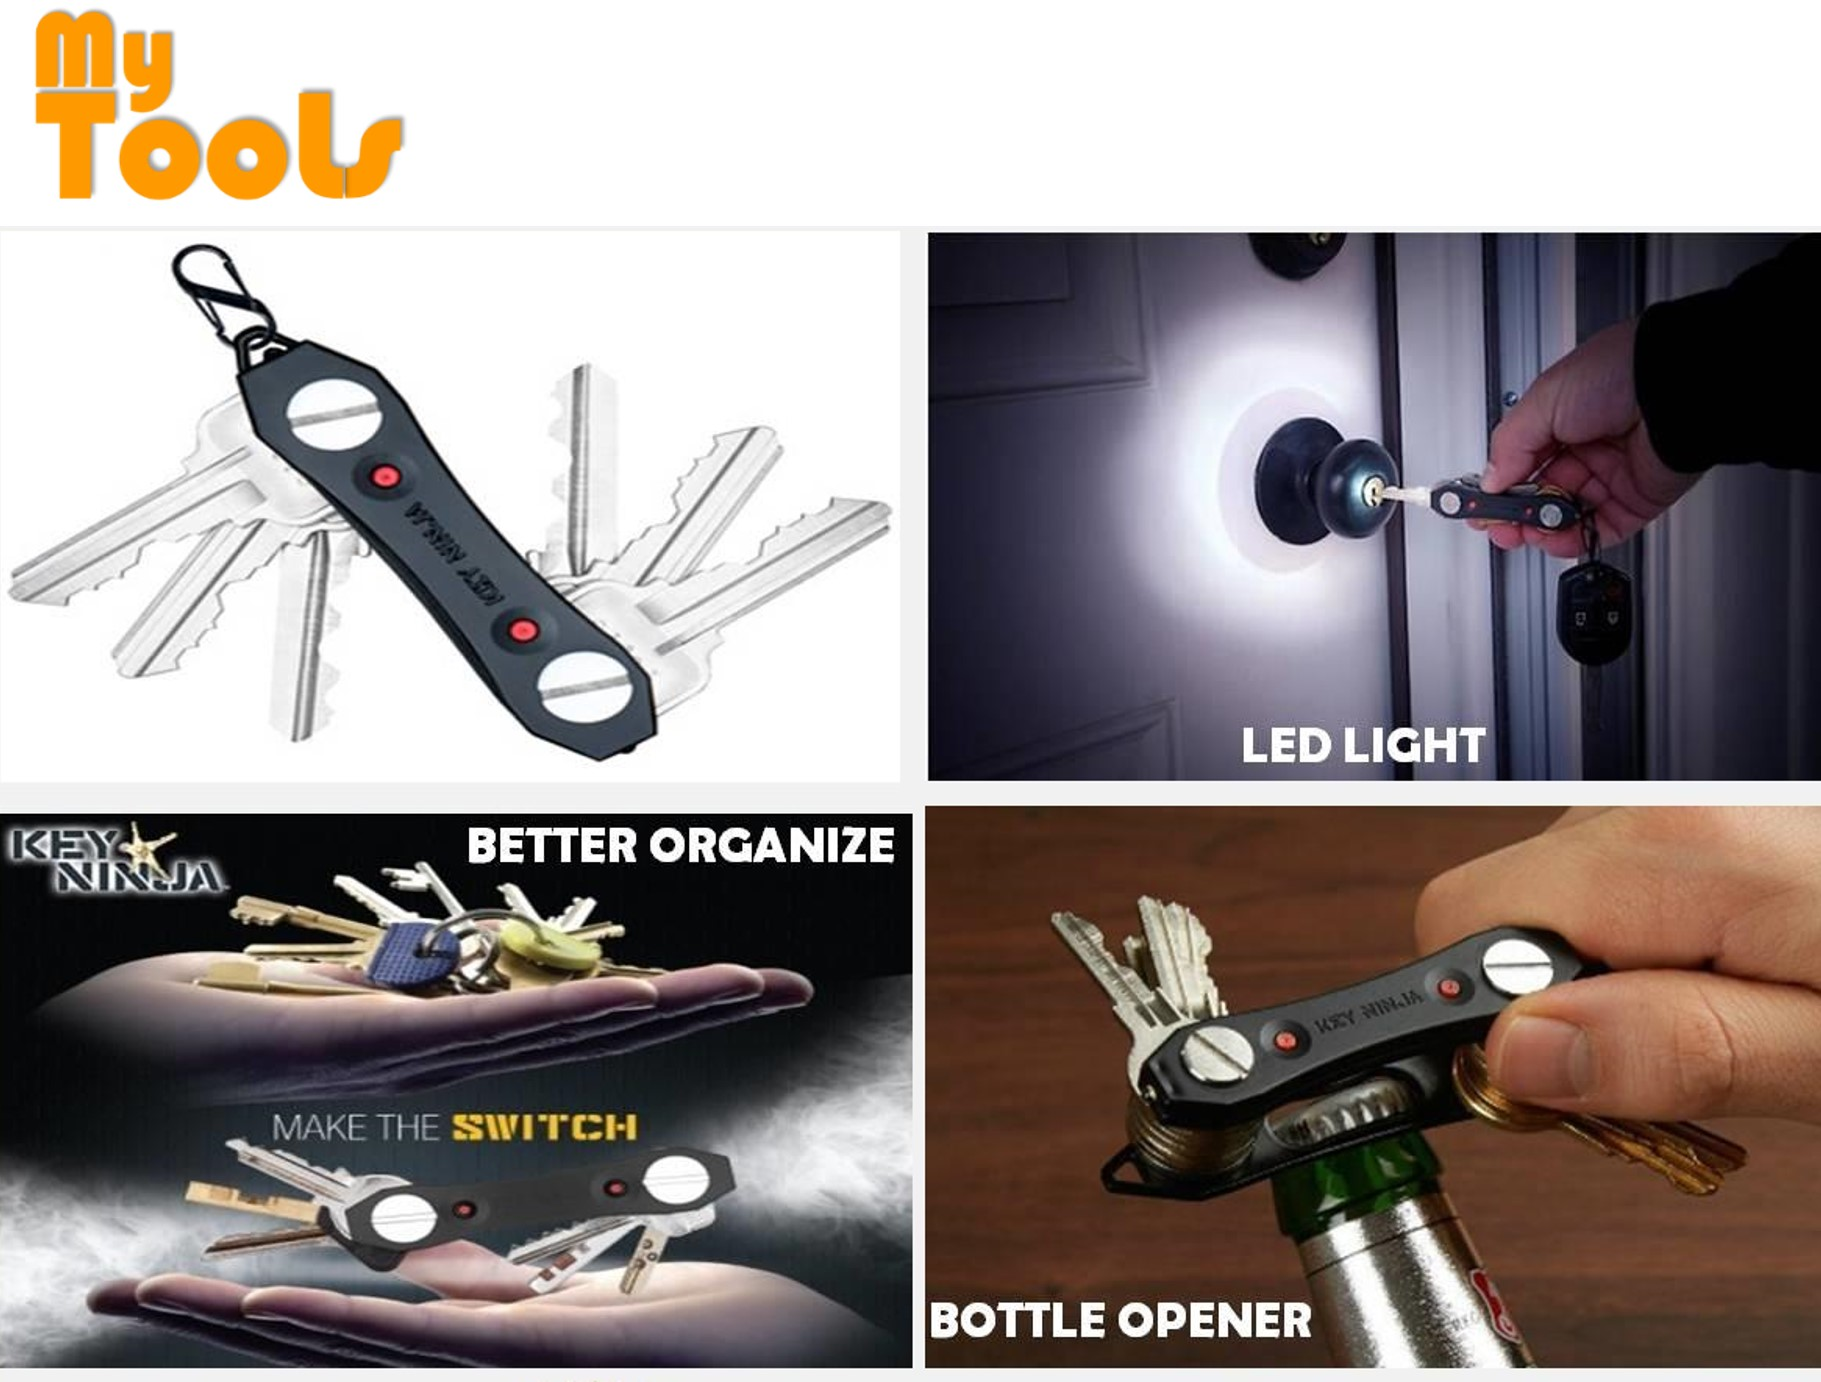 Mytools Key Ninja Organizer Up To 30 Keys With Dual LED Lights & Built in Bottle Opener